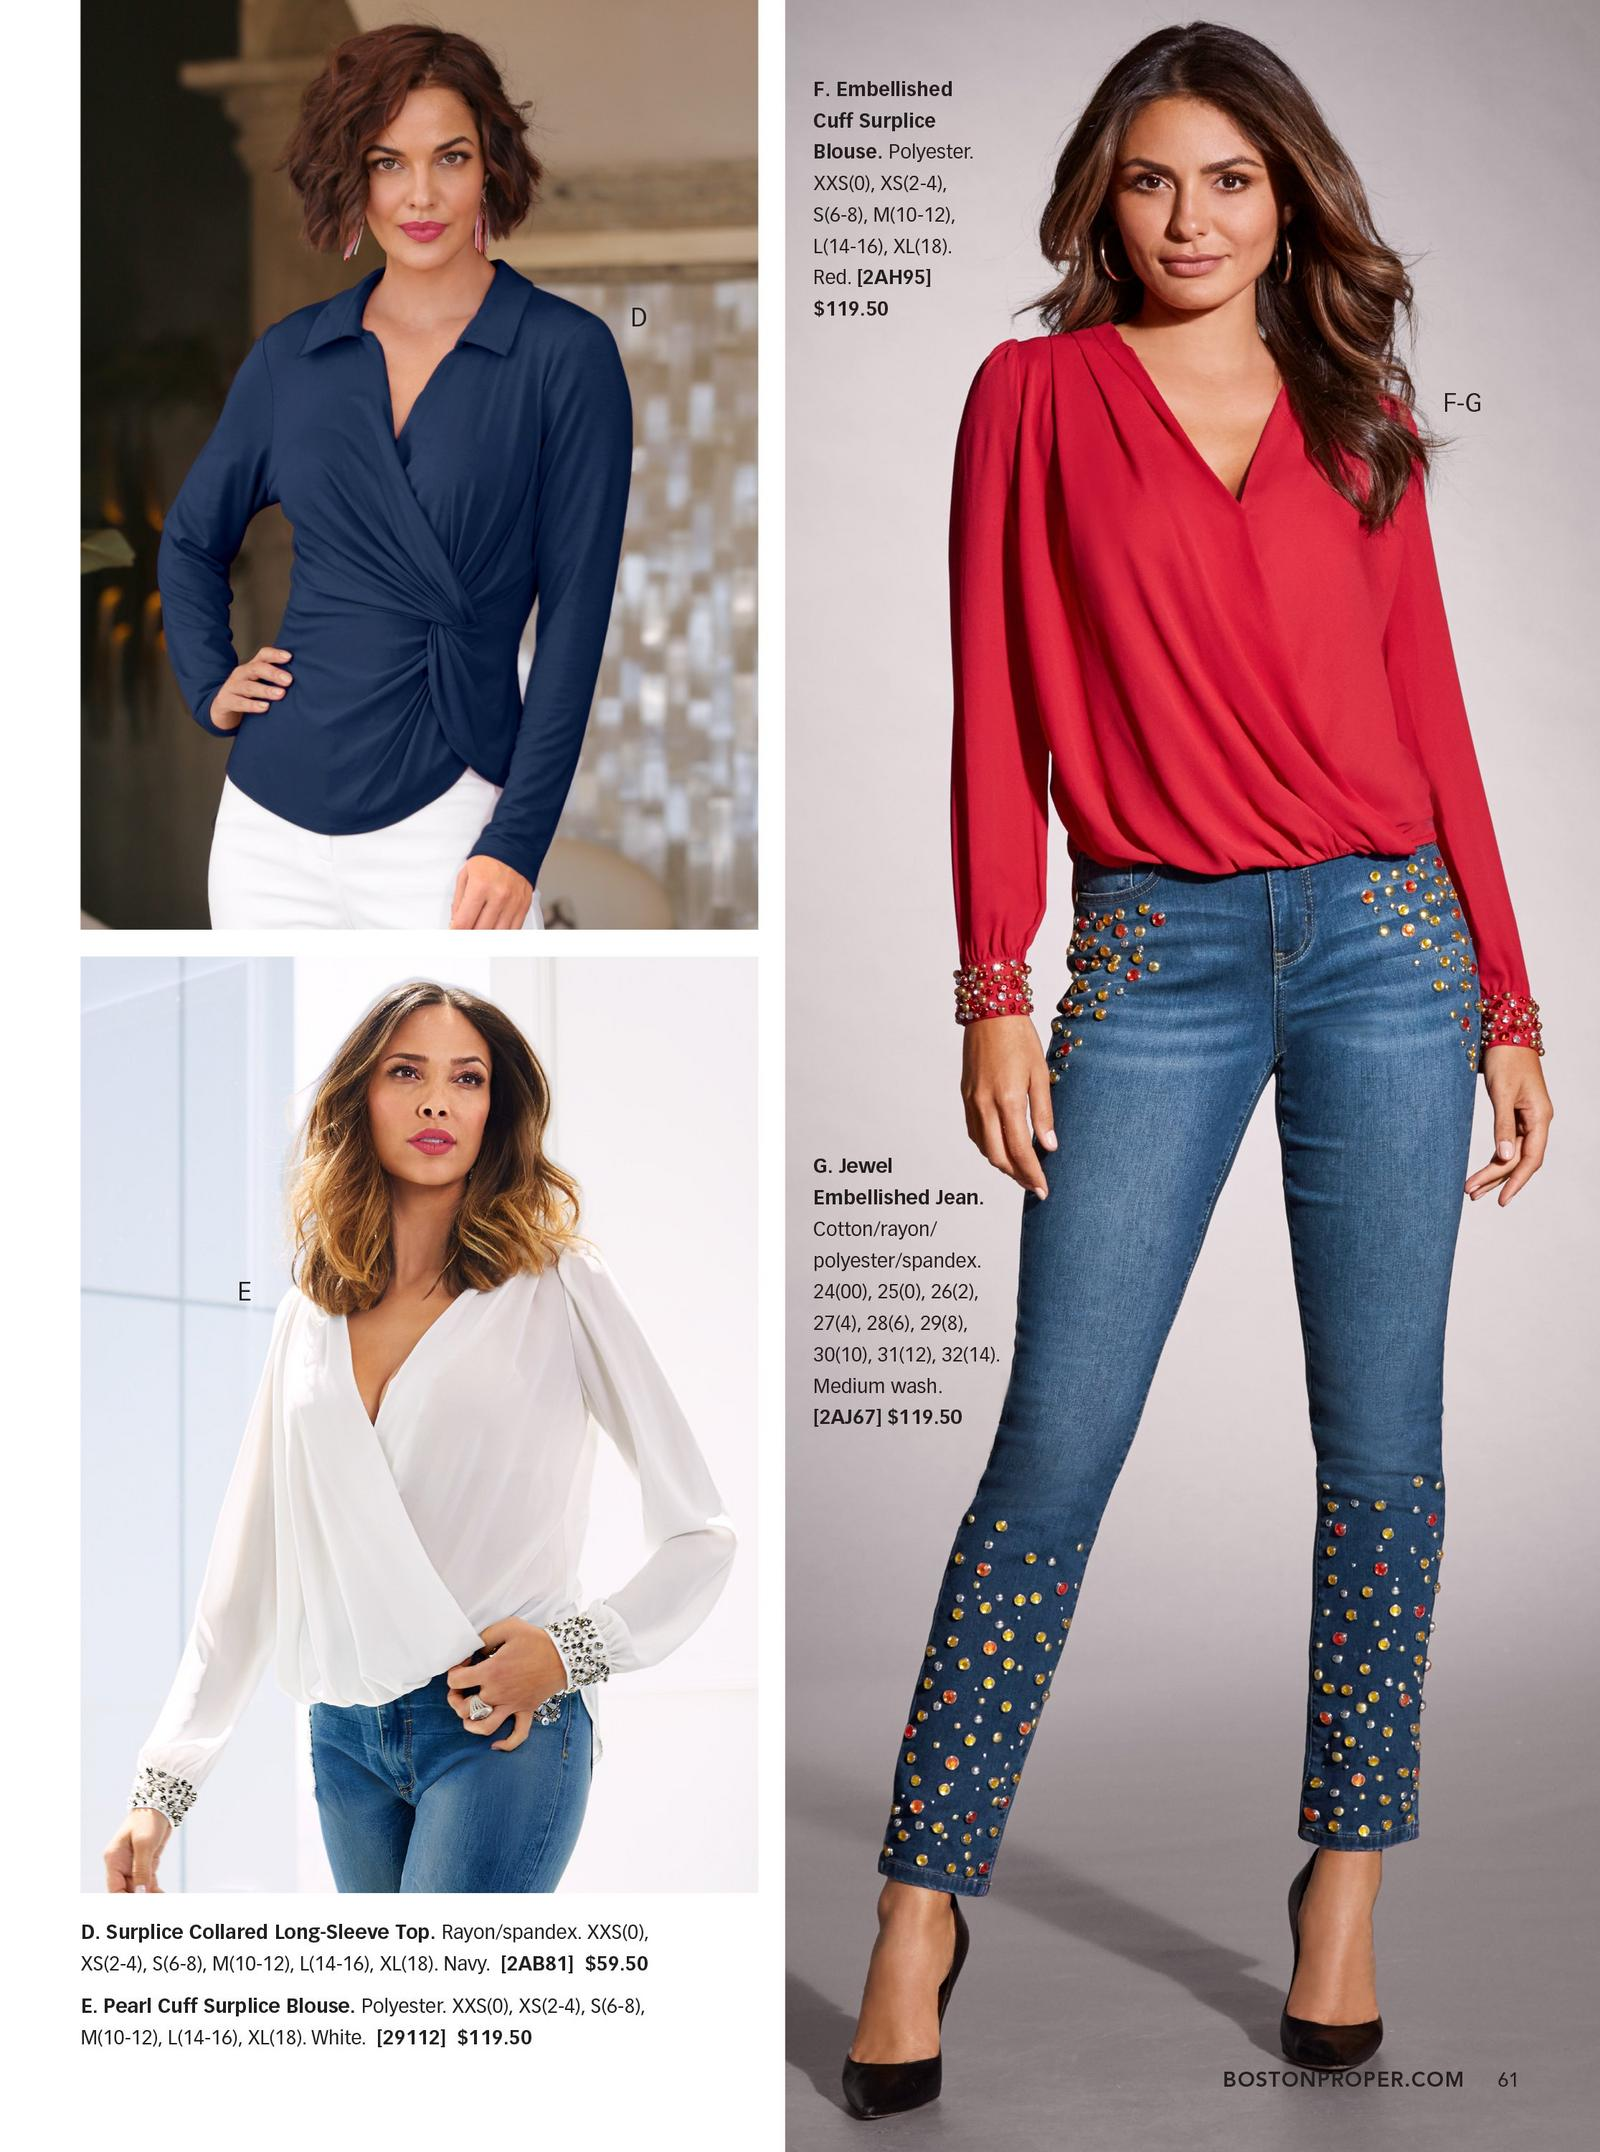 top left: navy surplice top and white pants. bottom left: pearl cuff surplice blouse. right: embellished cuff surplice blouse in red with jewel embellished jeans.